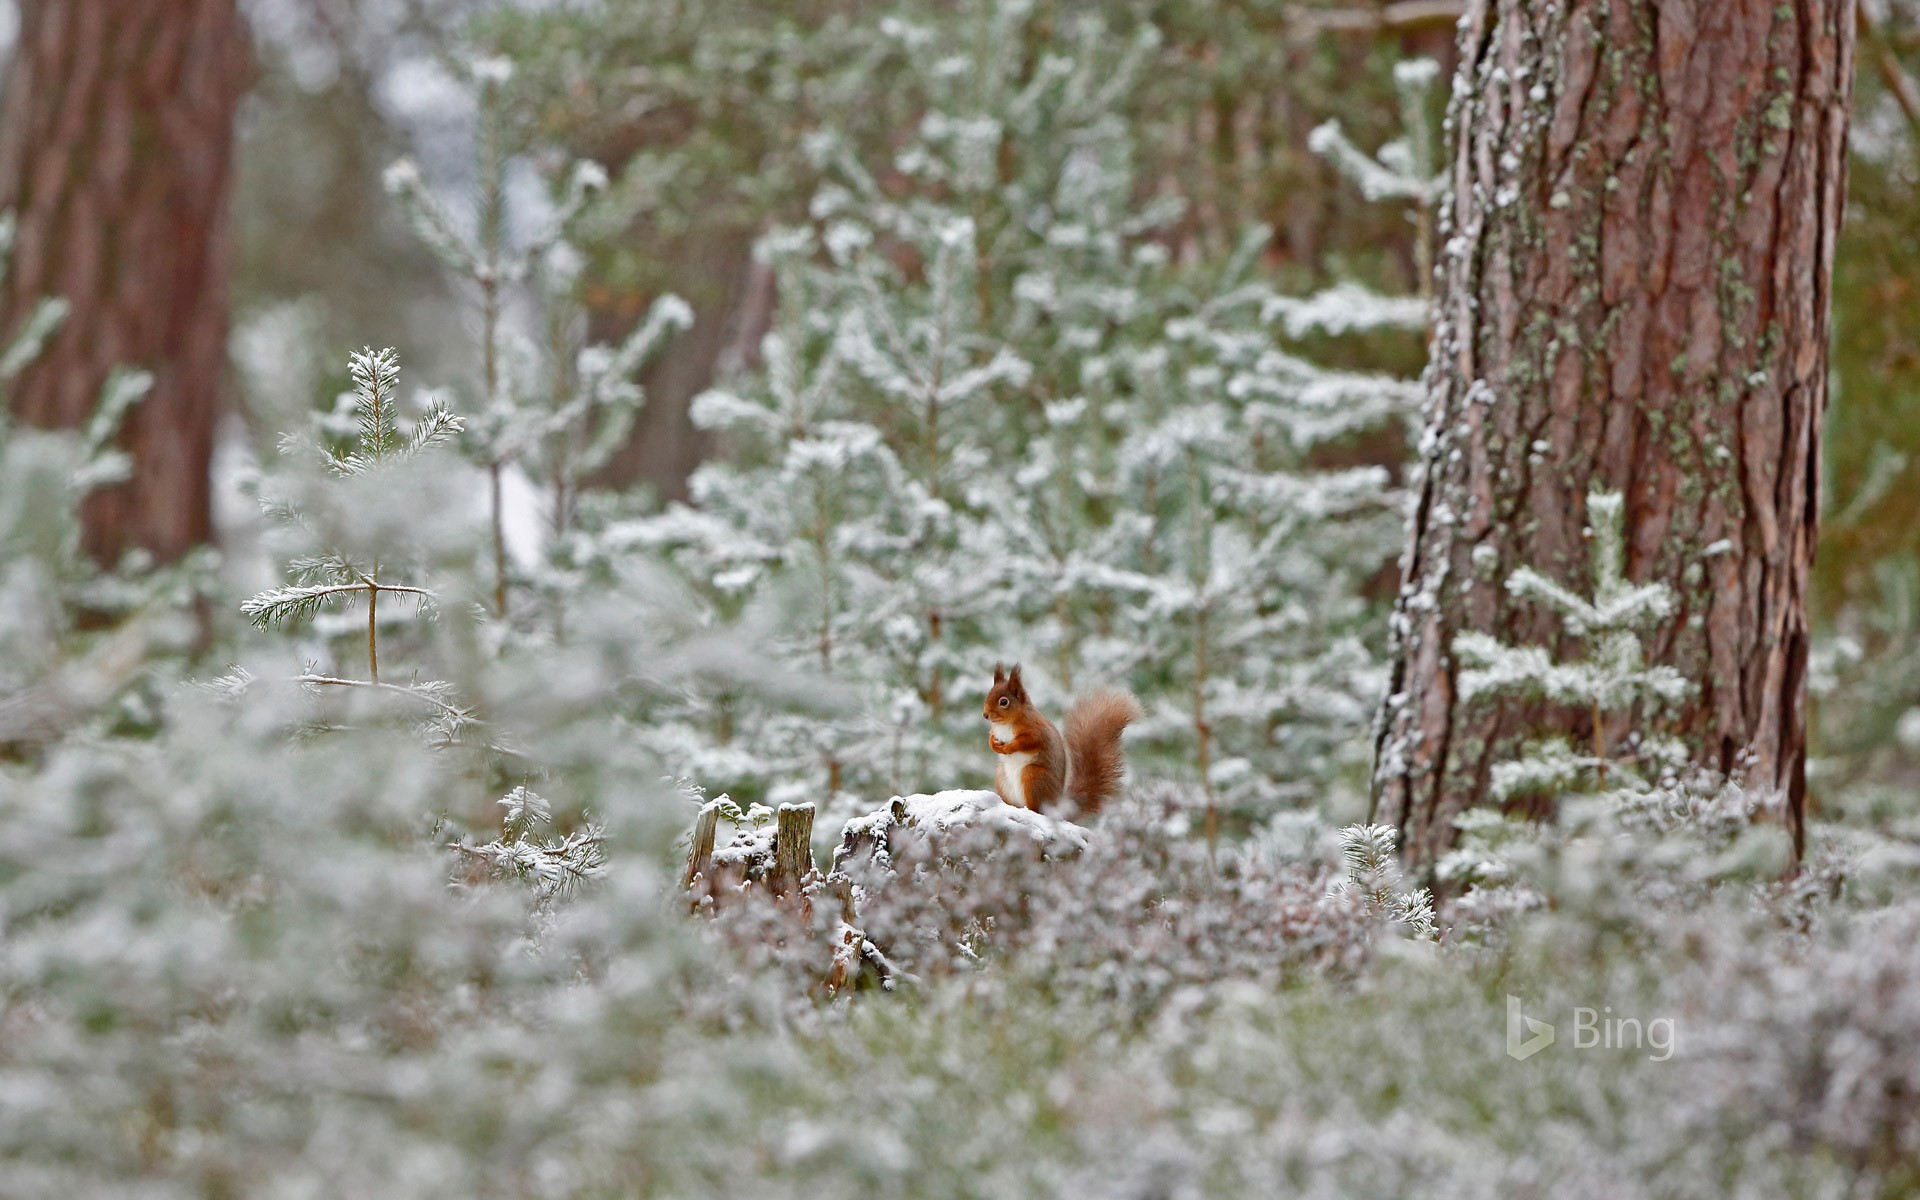 Red squirrel in Cairngorms National Park, Scotland